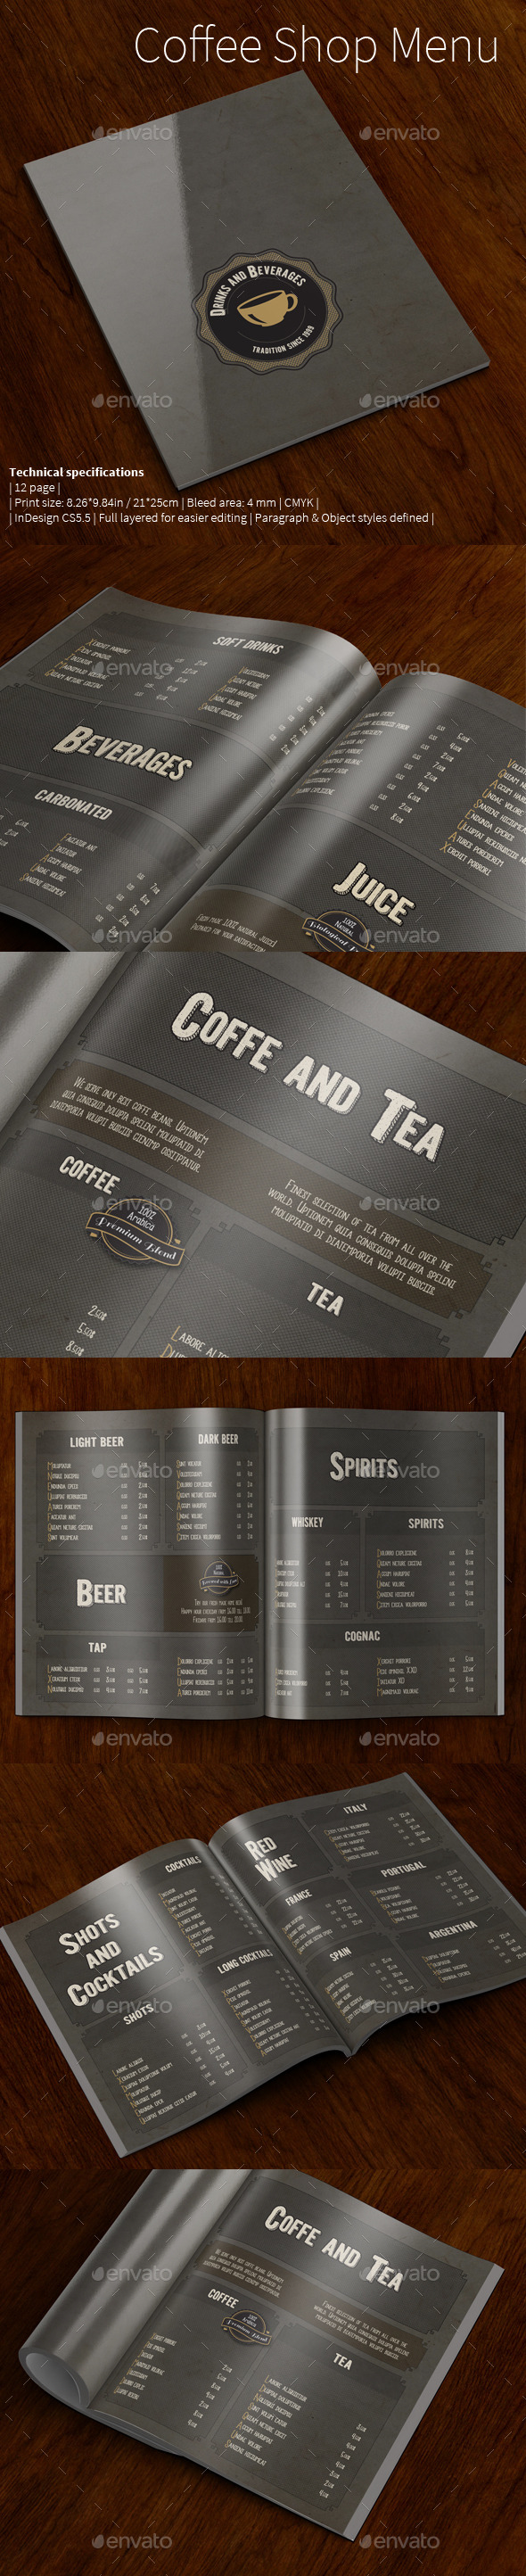 Coffee Shop Menu vol.2